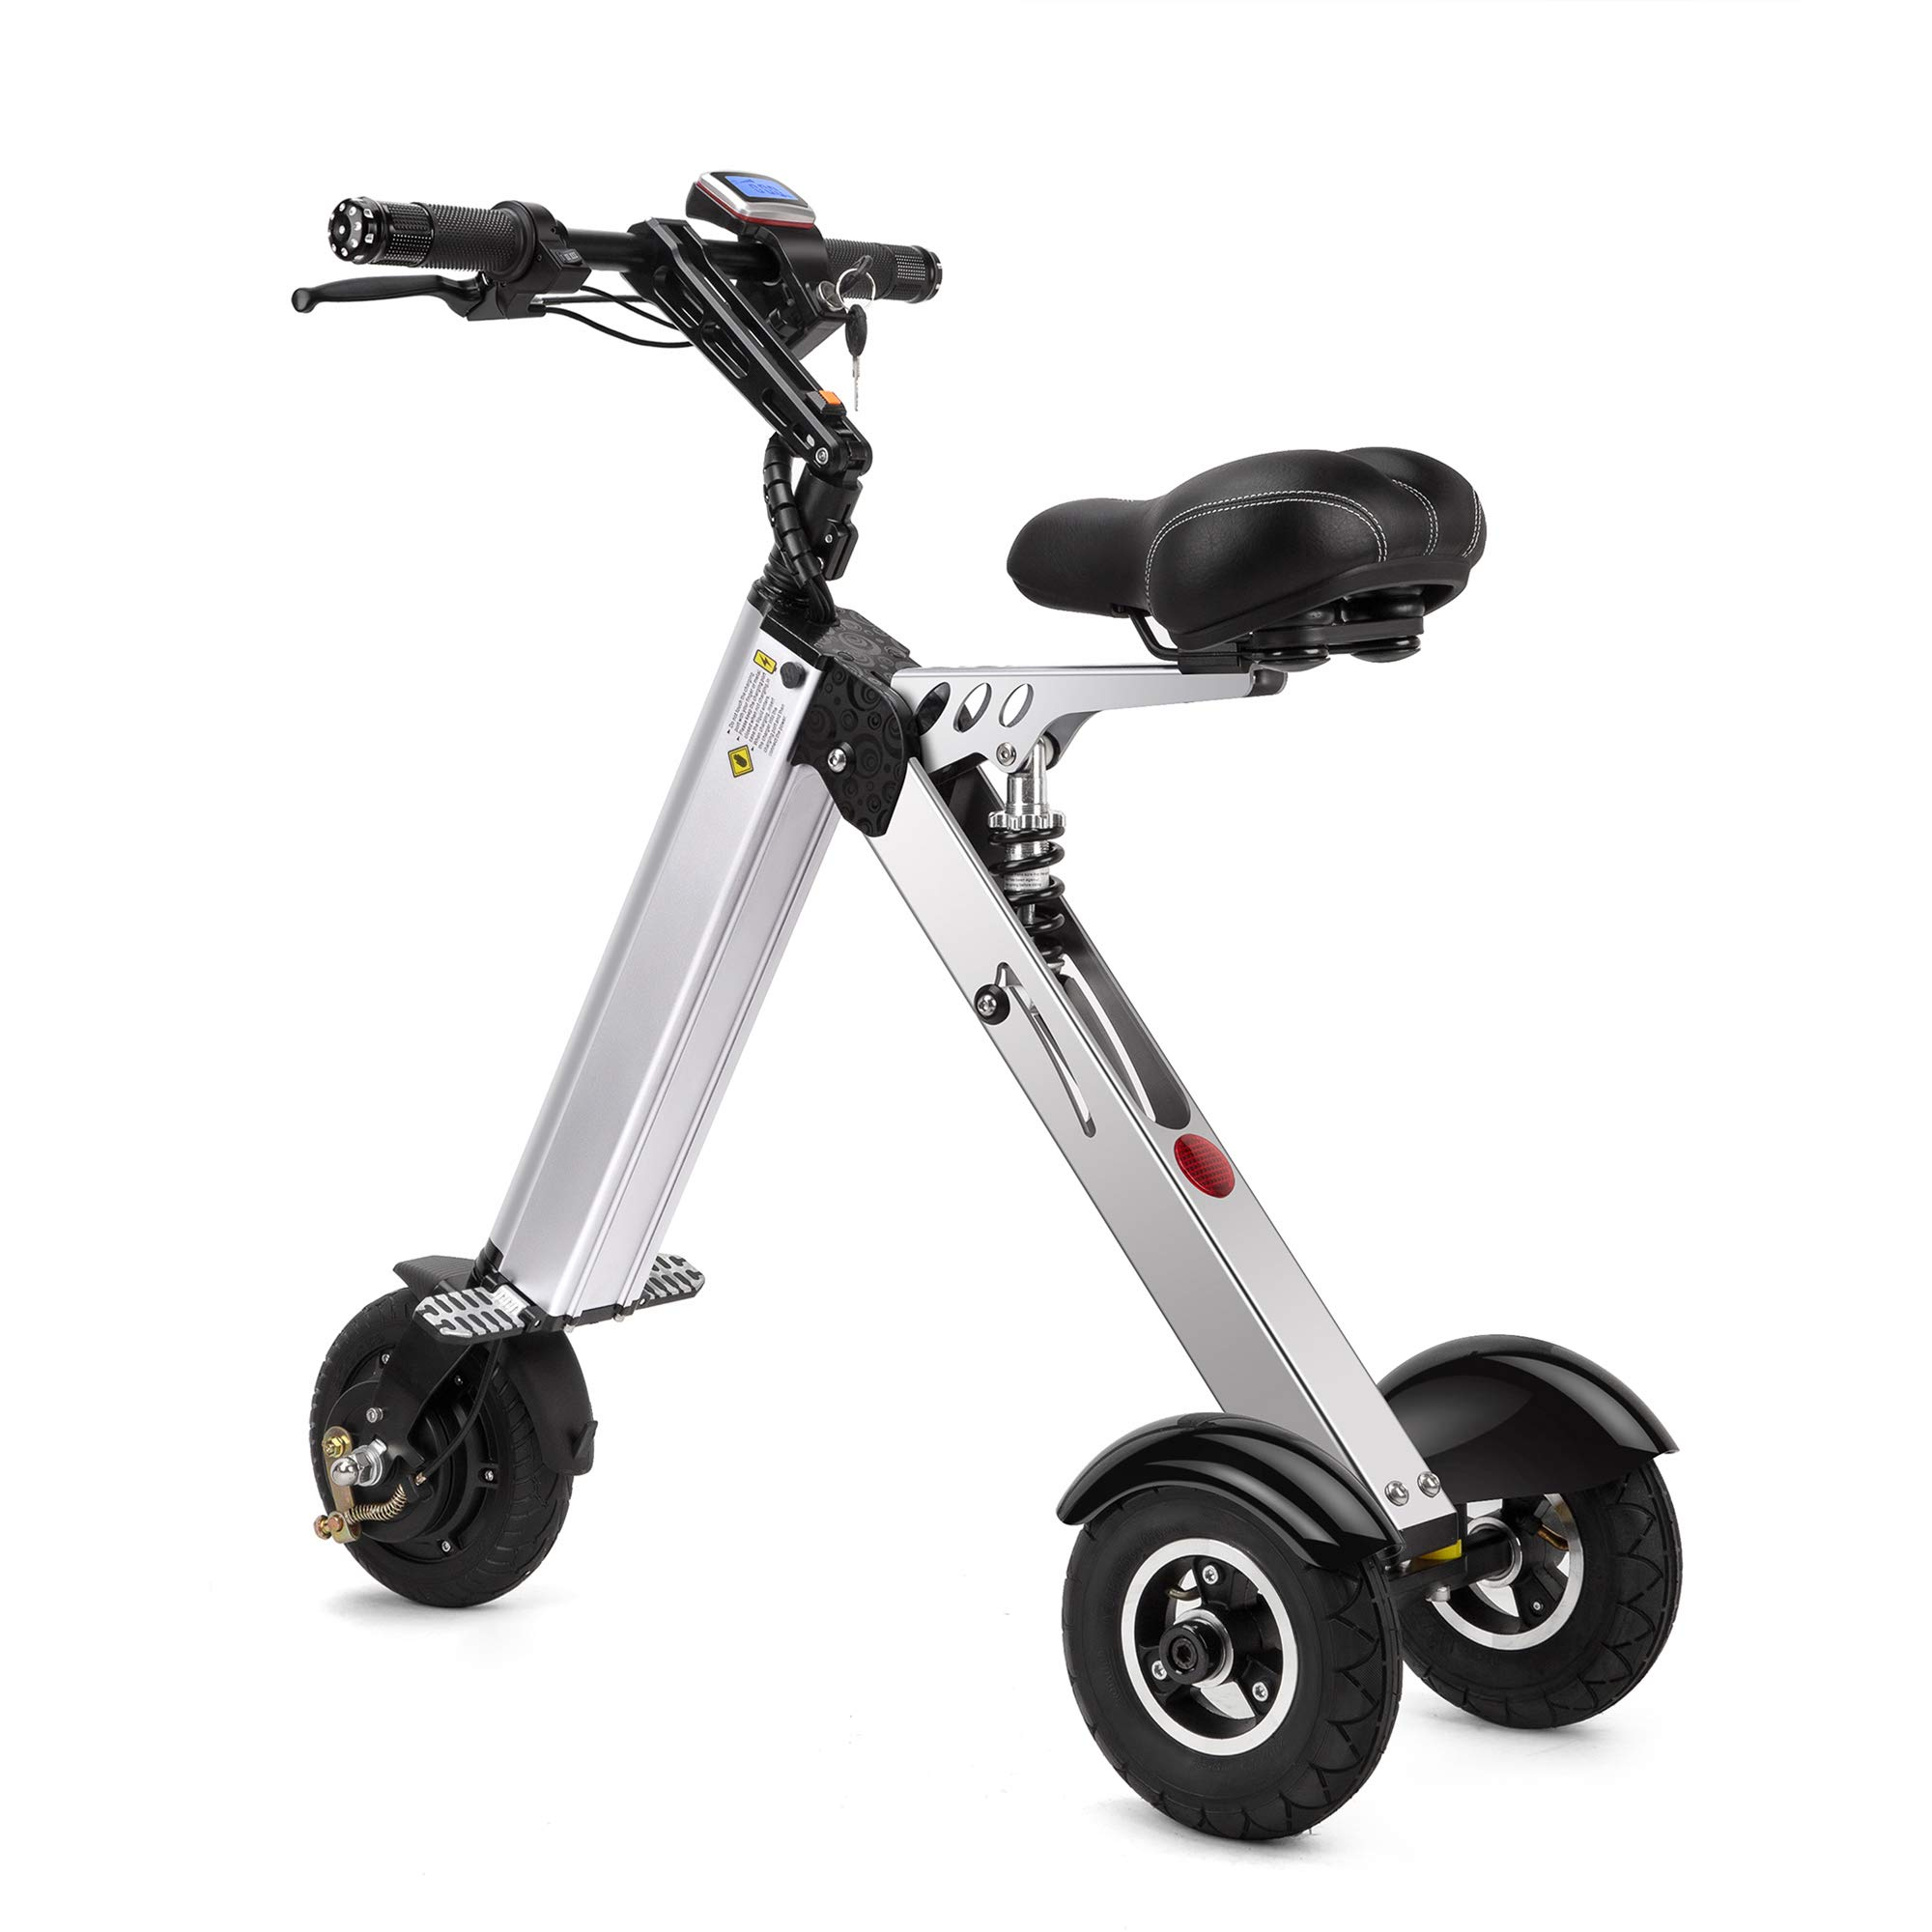 TopMate ES31Electric ScooterMini Tricycle| Key Switch3 Gears |Rear Axle Suspension |for Mobility Assistance and Travel by TopMate